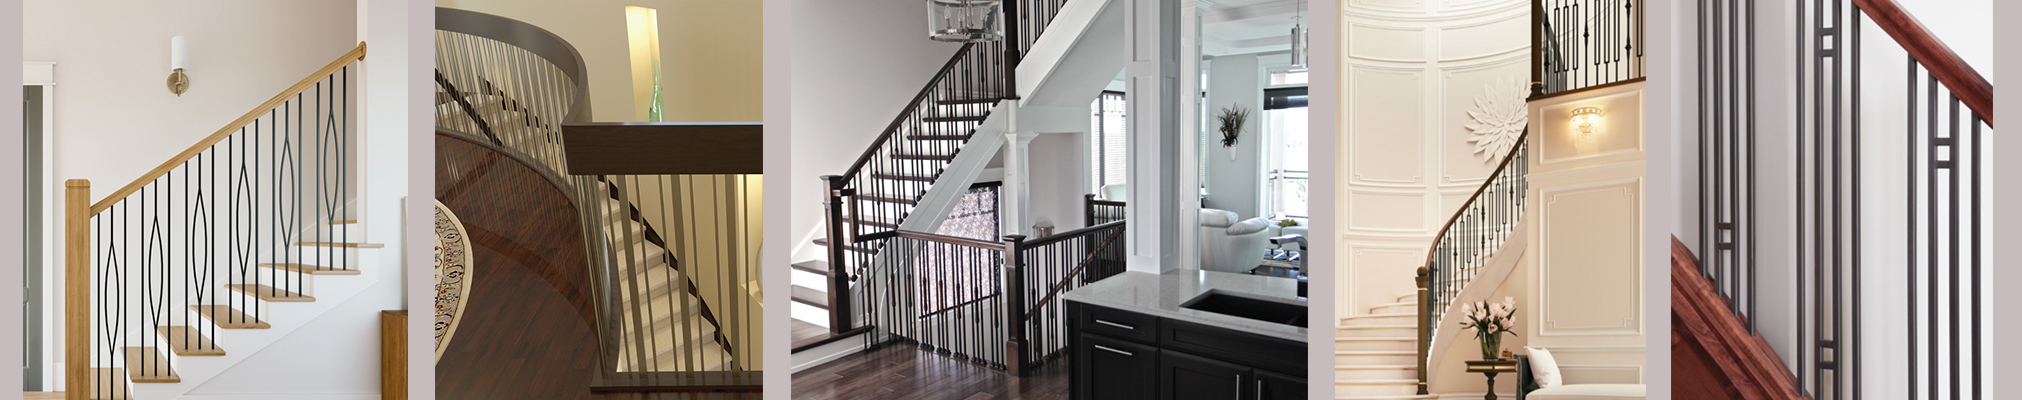 Metal Baluster selections (Discount Metal Balusters)